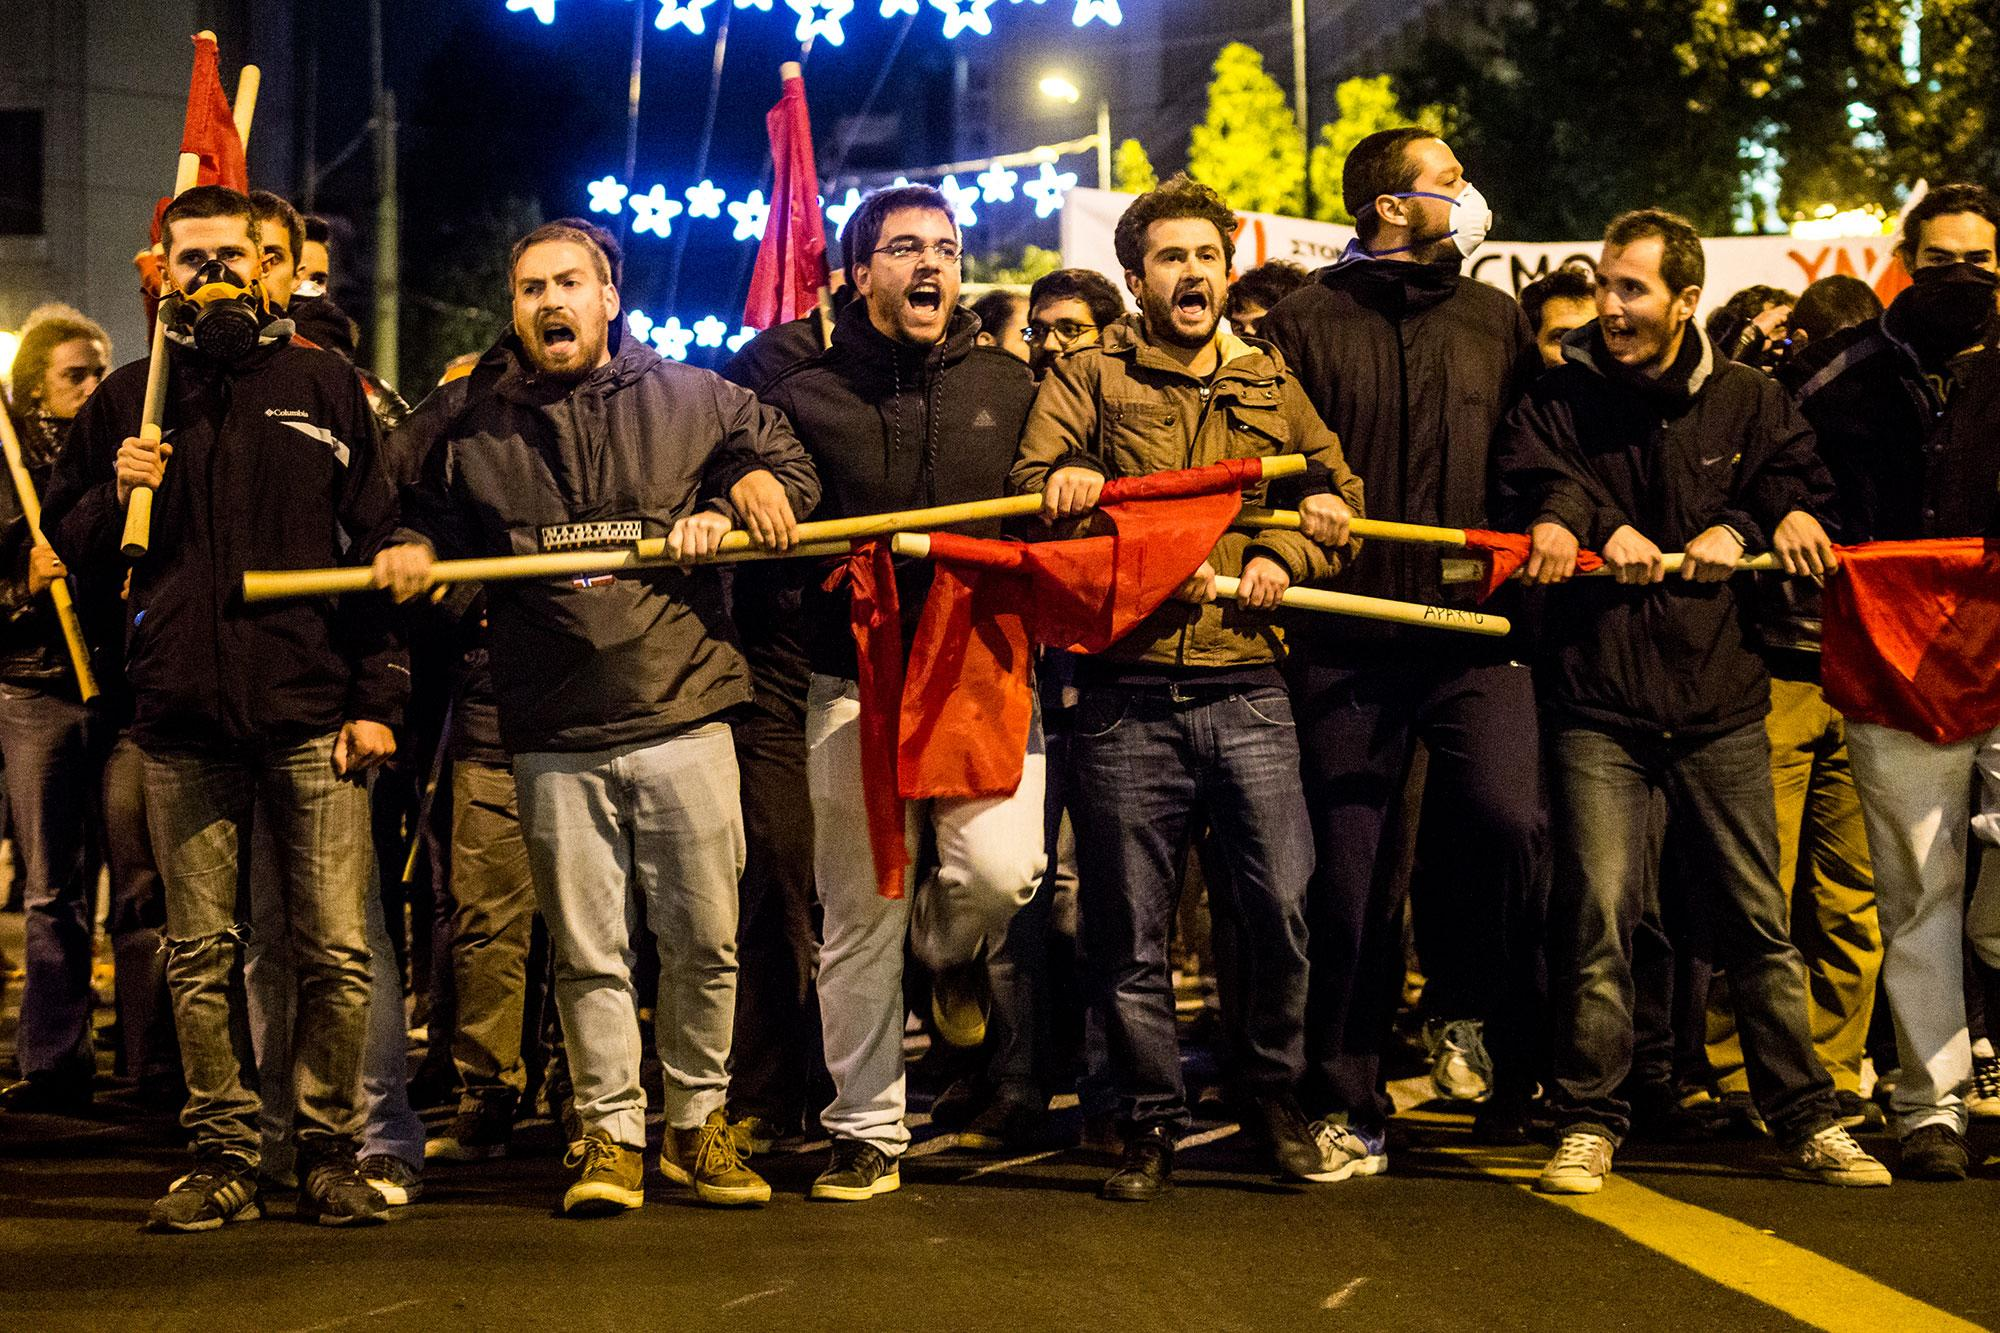 <p>Leftists march and shout slogans during a protest against President Barack Obama's visit in Athens, between riot policemen and protesters on Nov. 15, 2016. (Kostas Pikoulas/Pacific Press/LightRocket via Getty Images) </p>